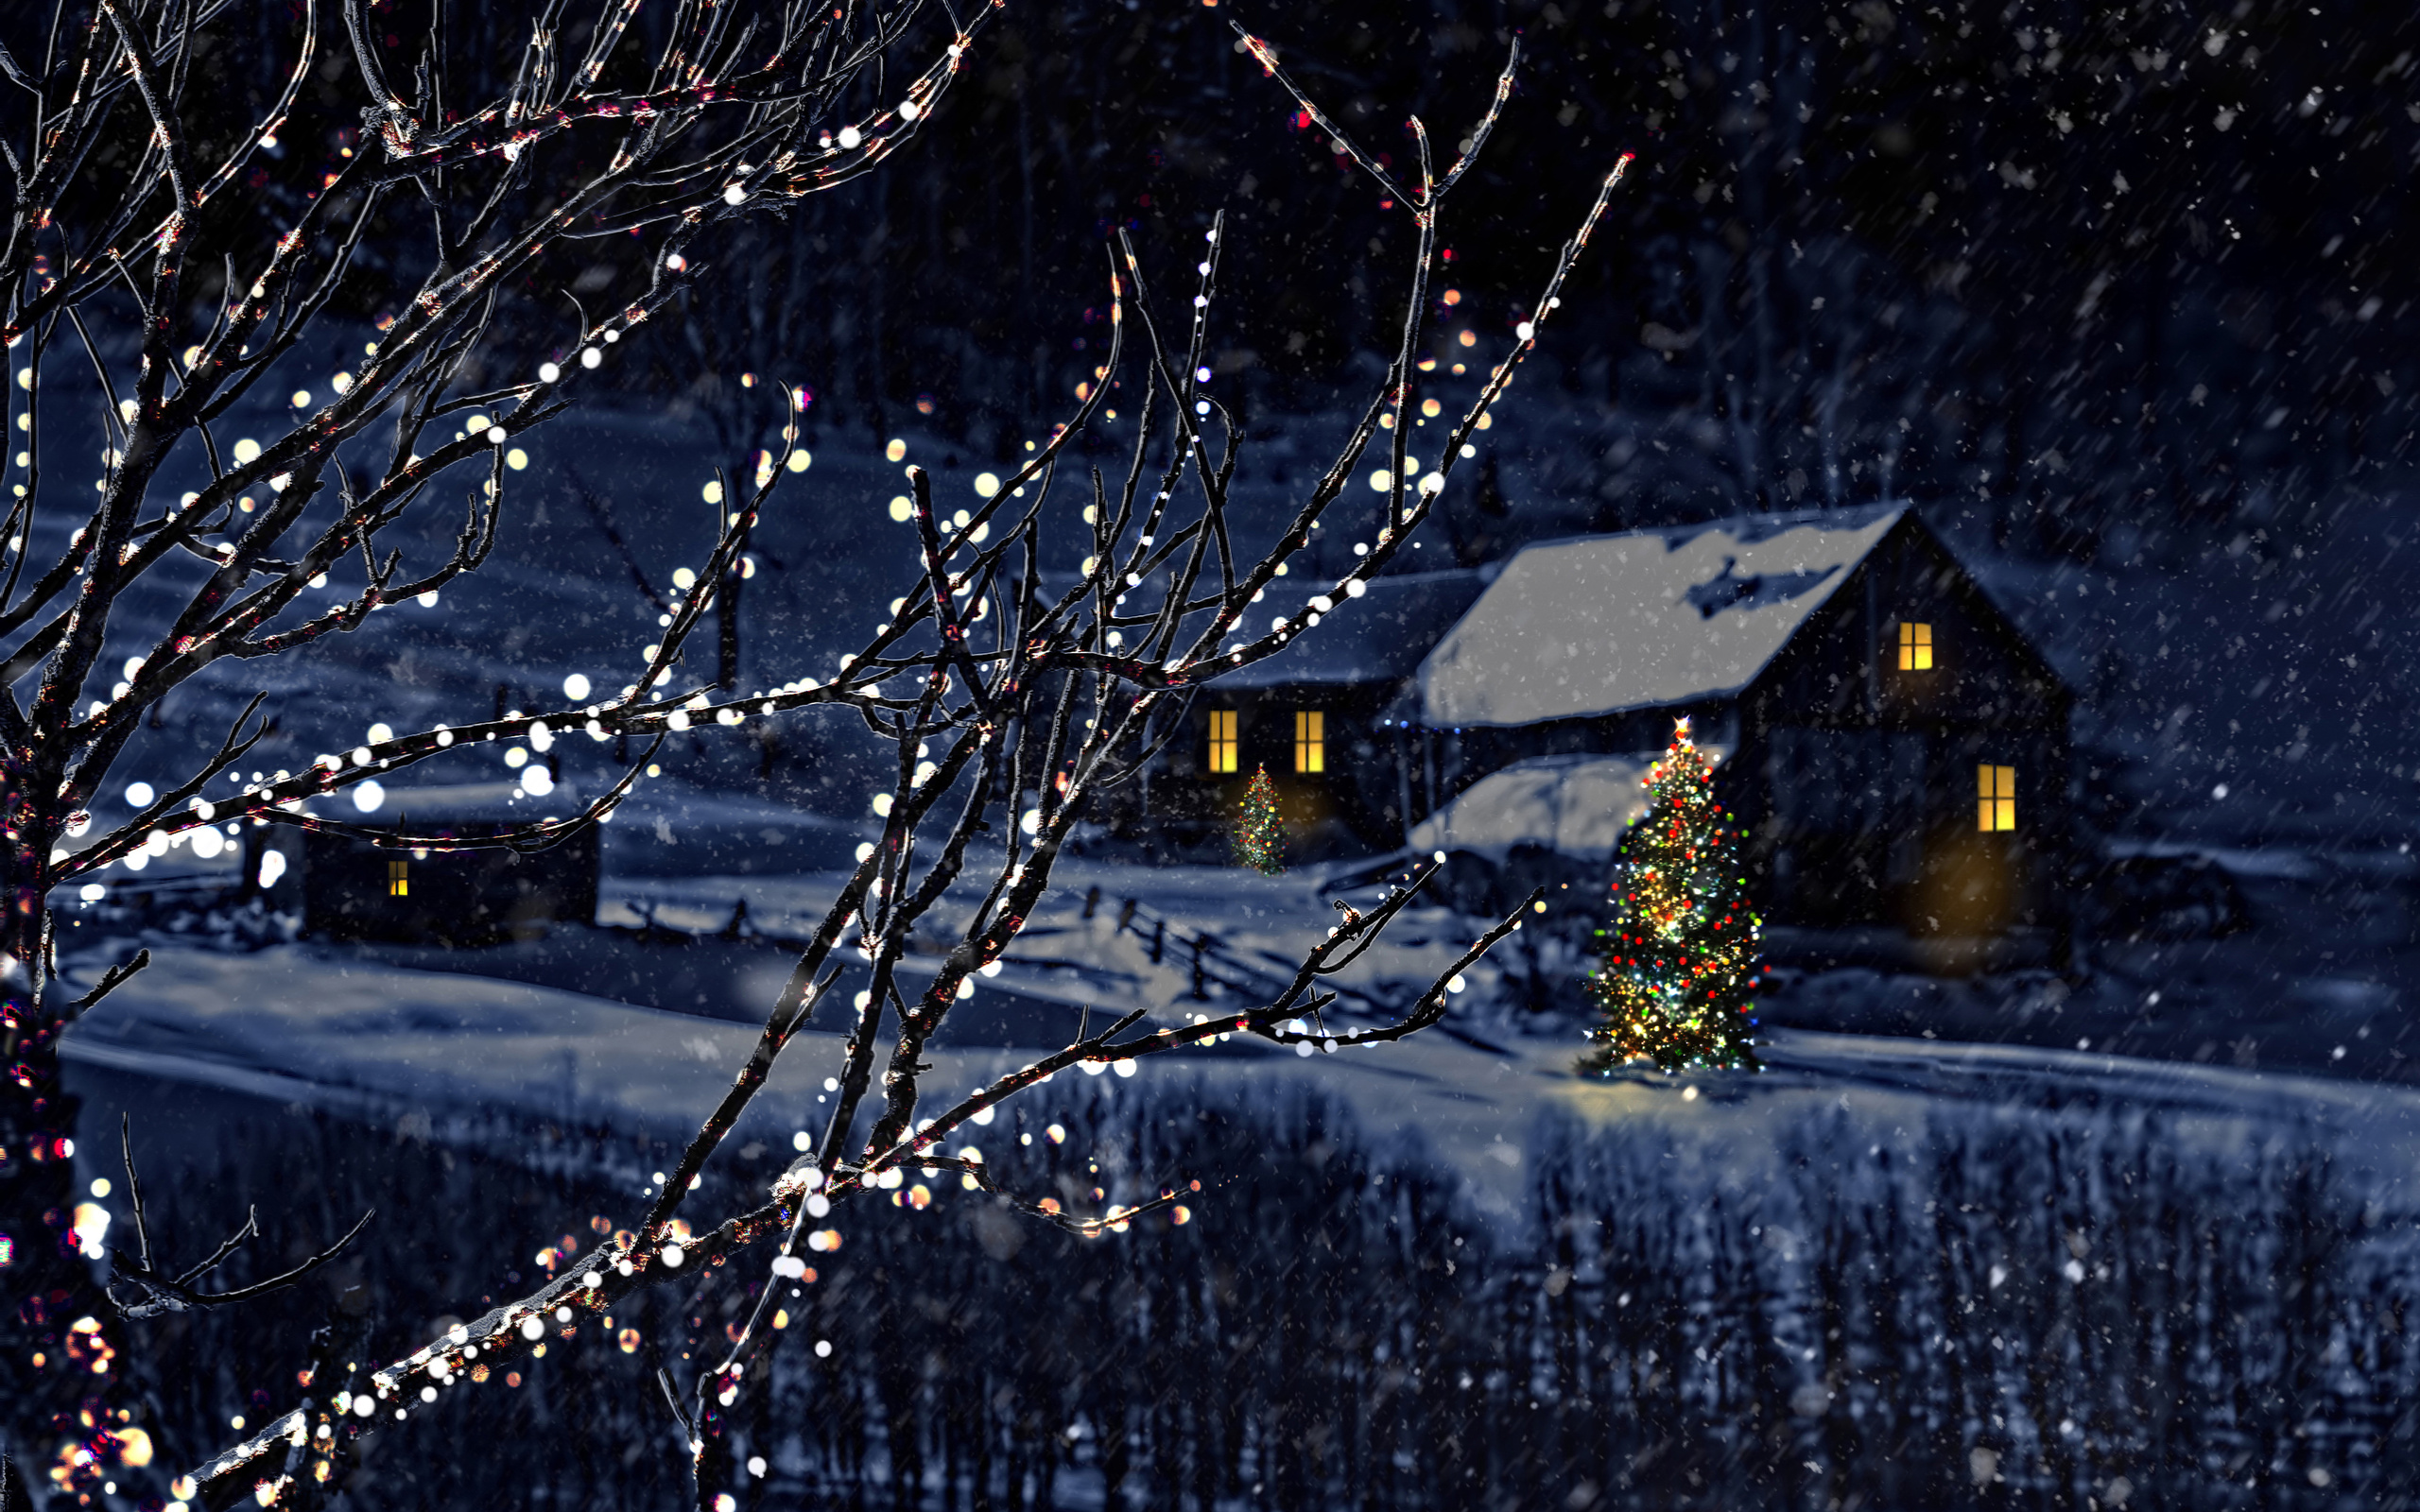 night christmas tree new year winter bokeh wallpaper 2560x1600 176640 wallpaperup